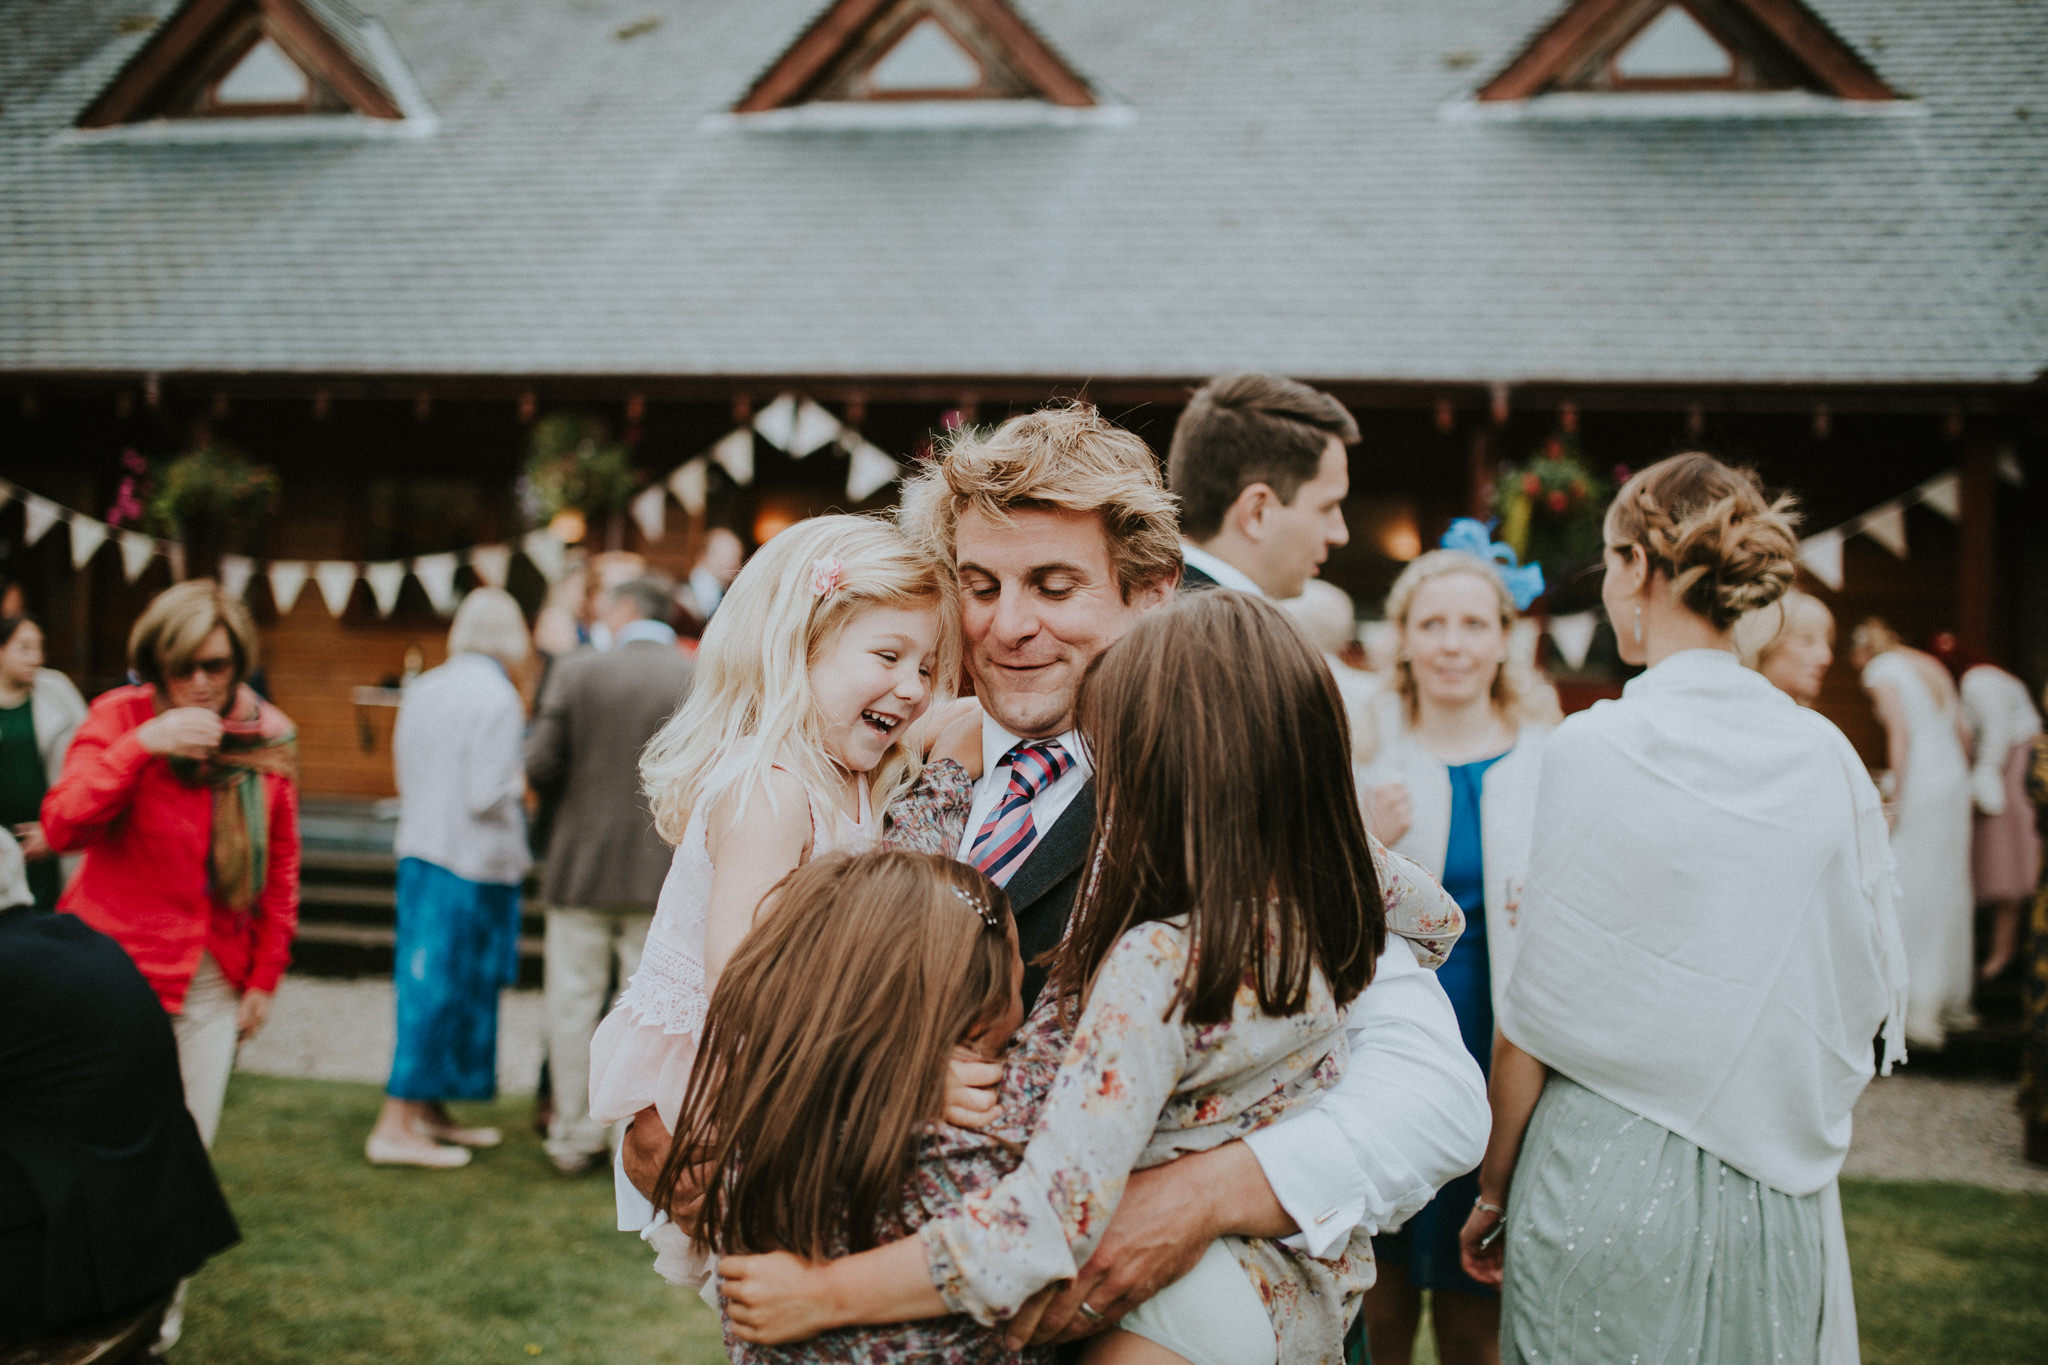 A wedding guest is hugging three children.